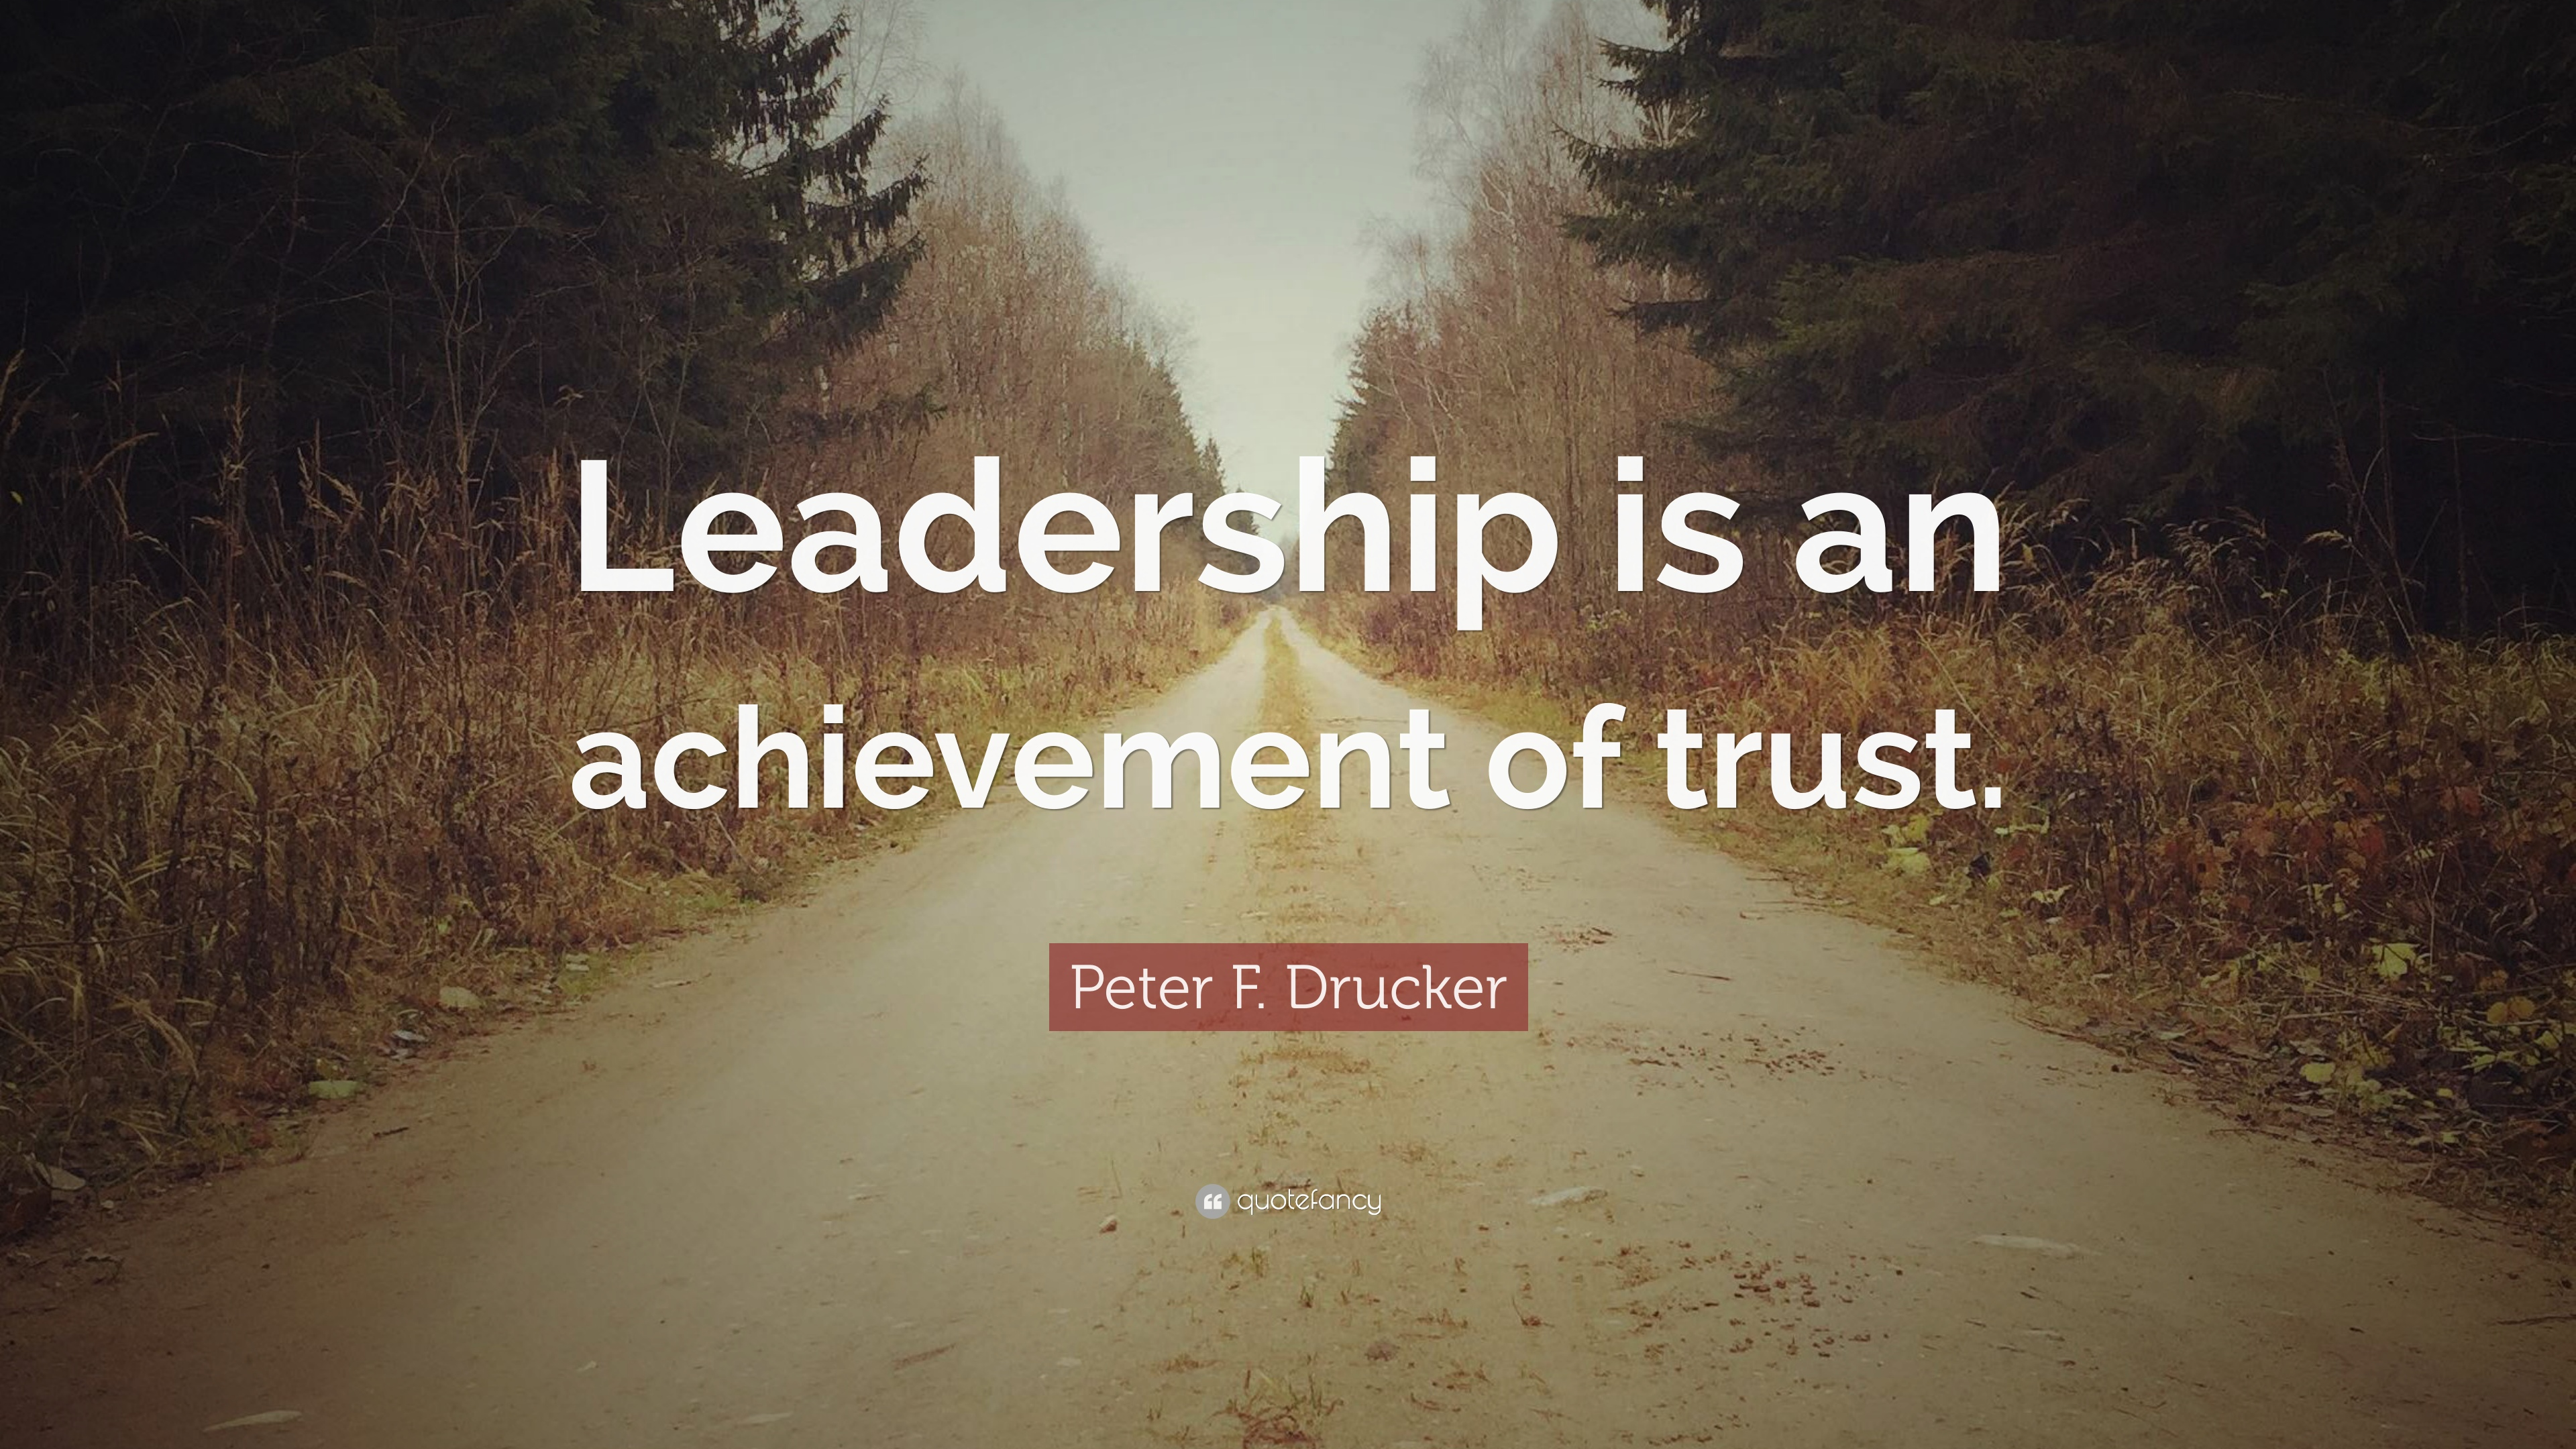 Peter F Drucker Quote Leadership Is An Achievement Of Trust 10